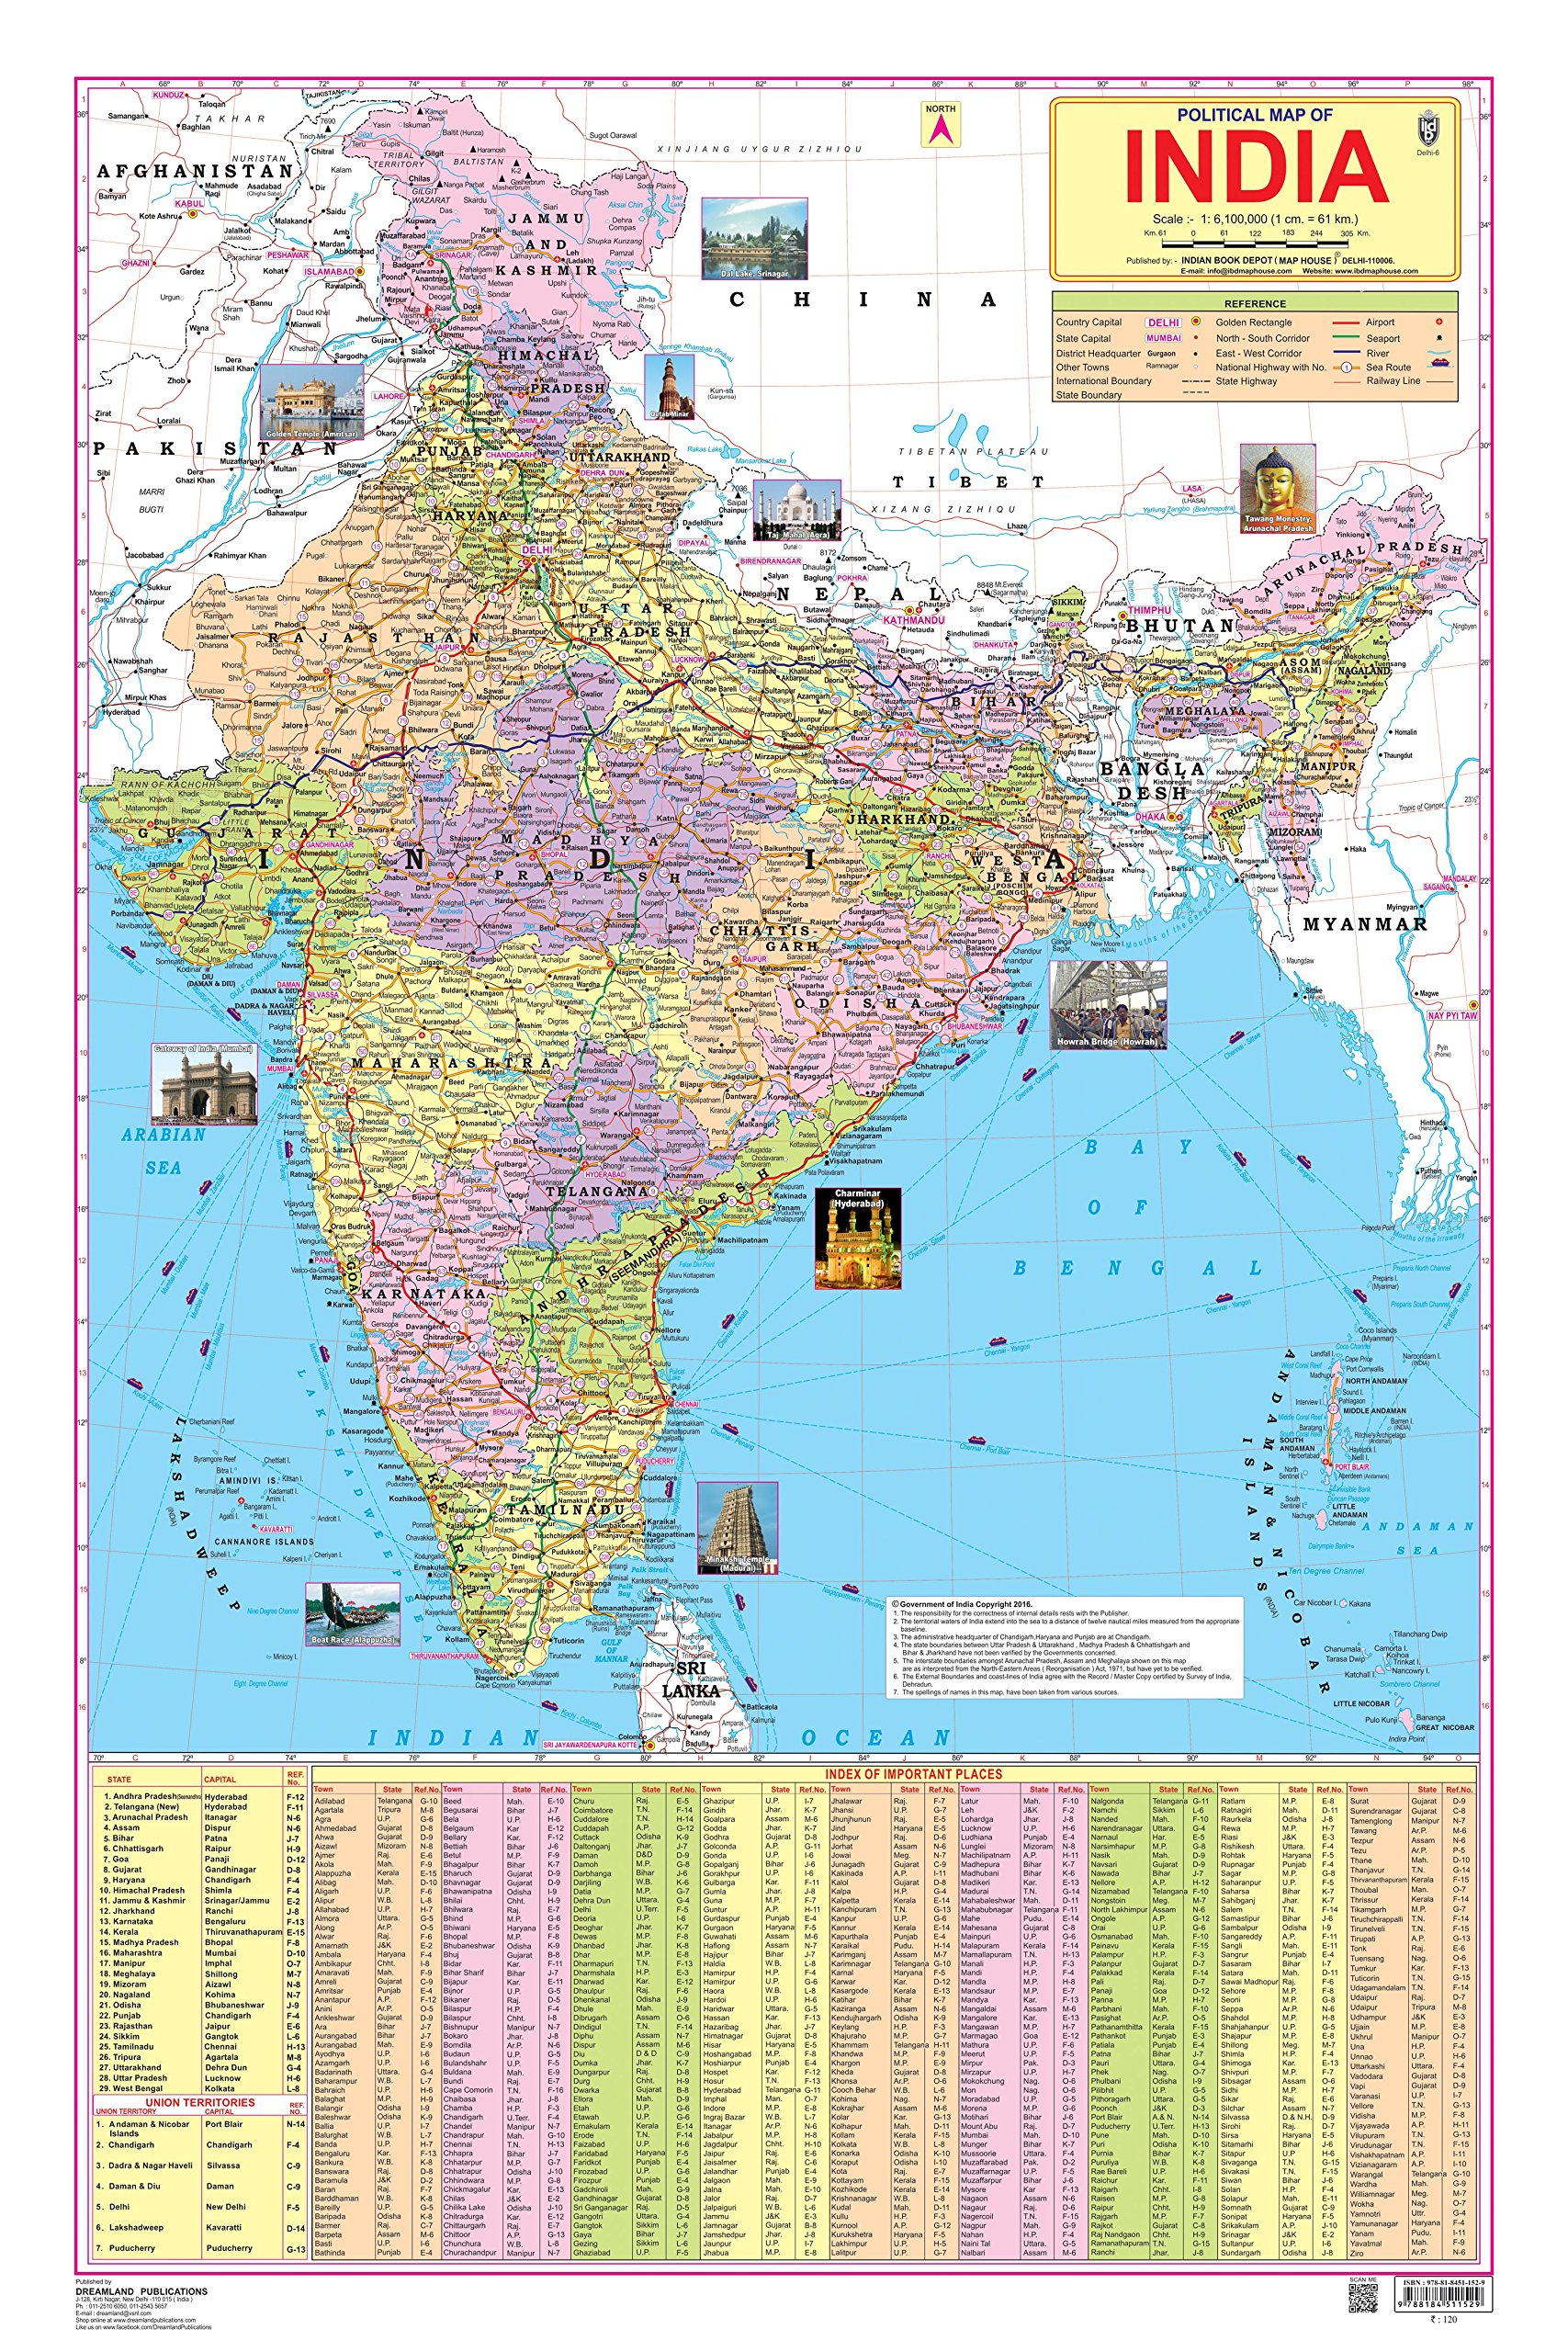 Buy india map book online at low prices in india india map reviews buy india map book online at low prices in india india map reviews ratings amazon gumiabroncs Image collections